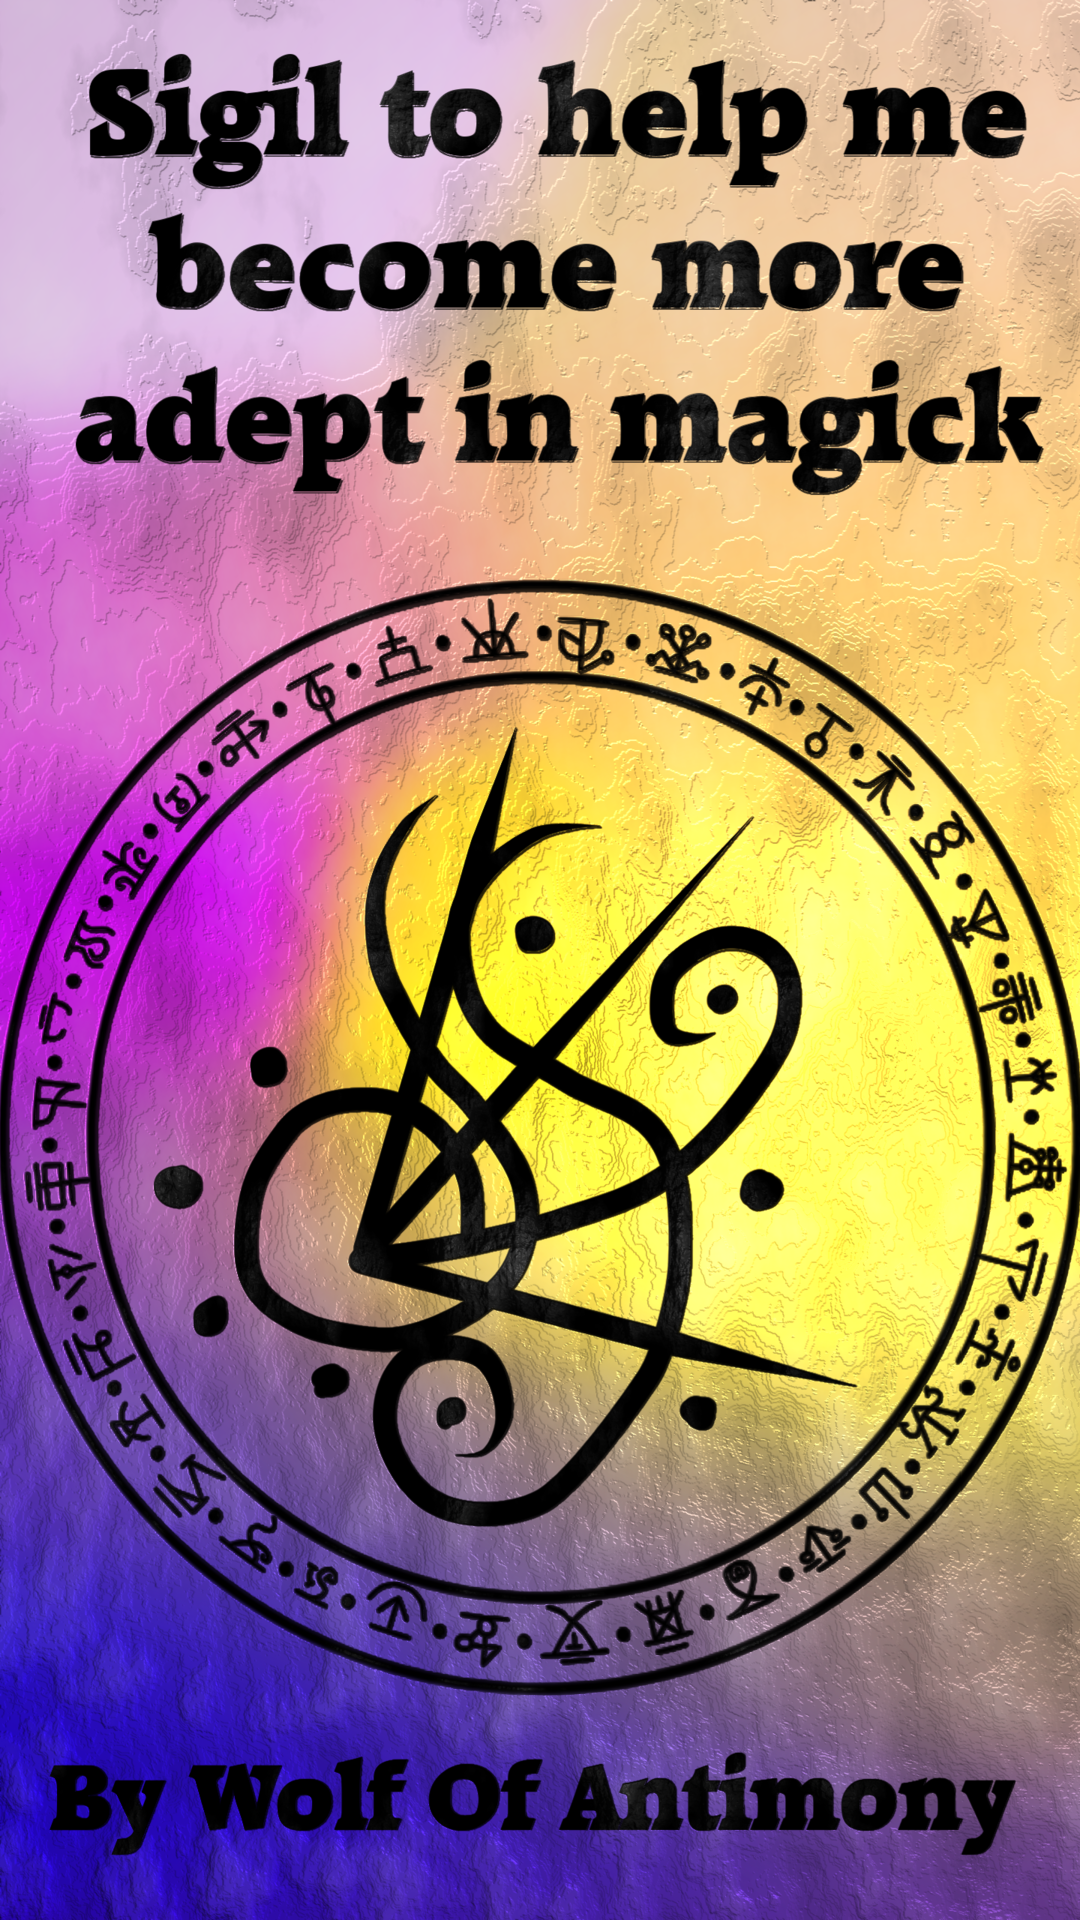 Sigil to help me become more adept in magick Requested by